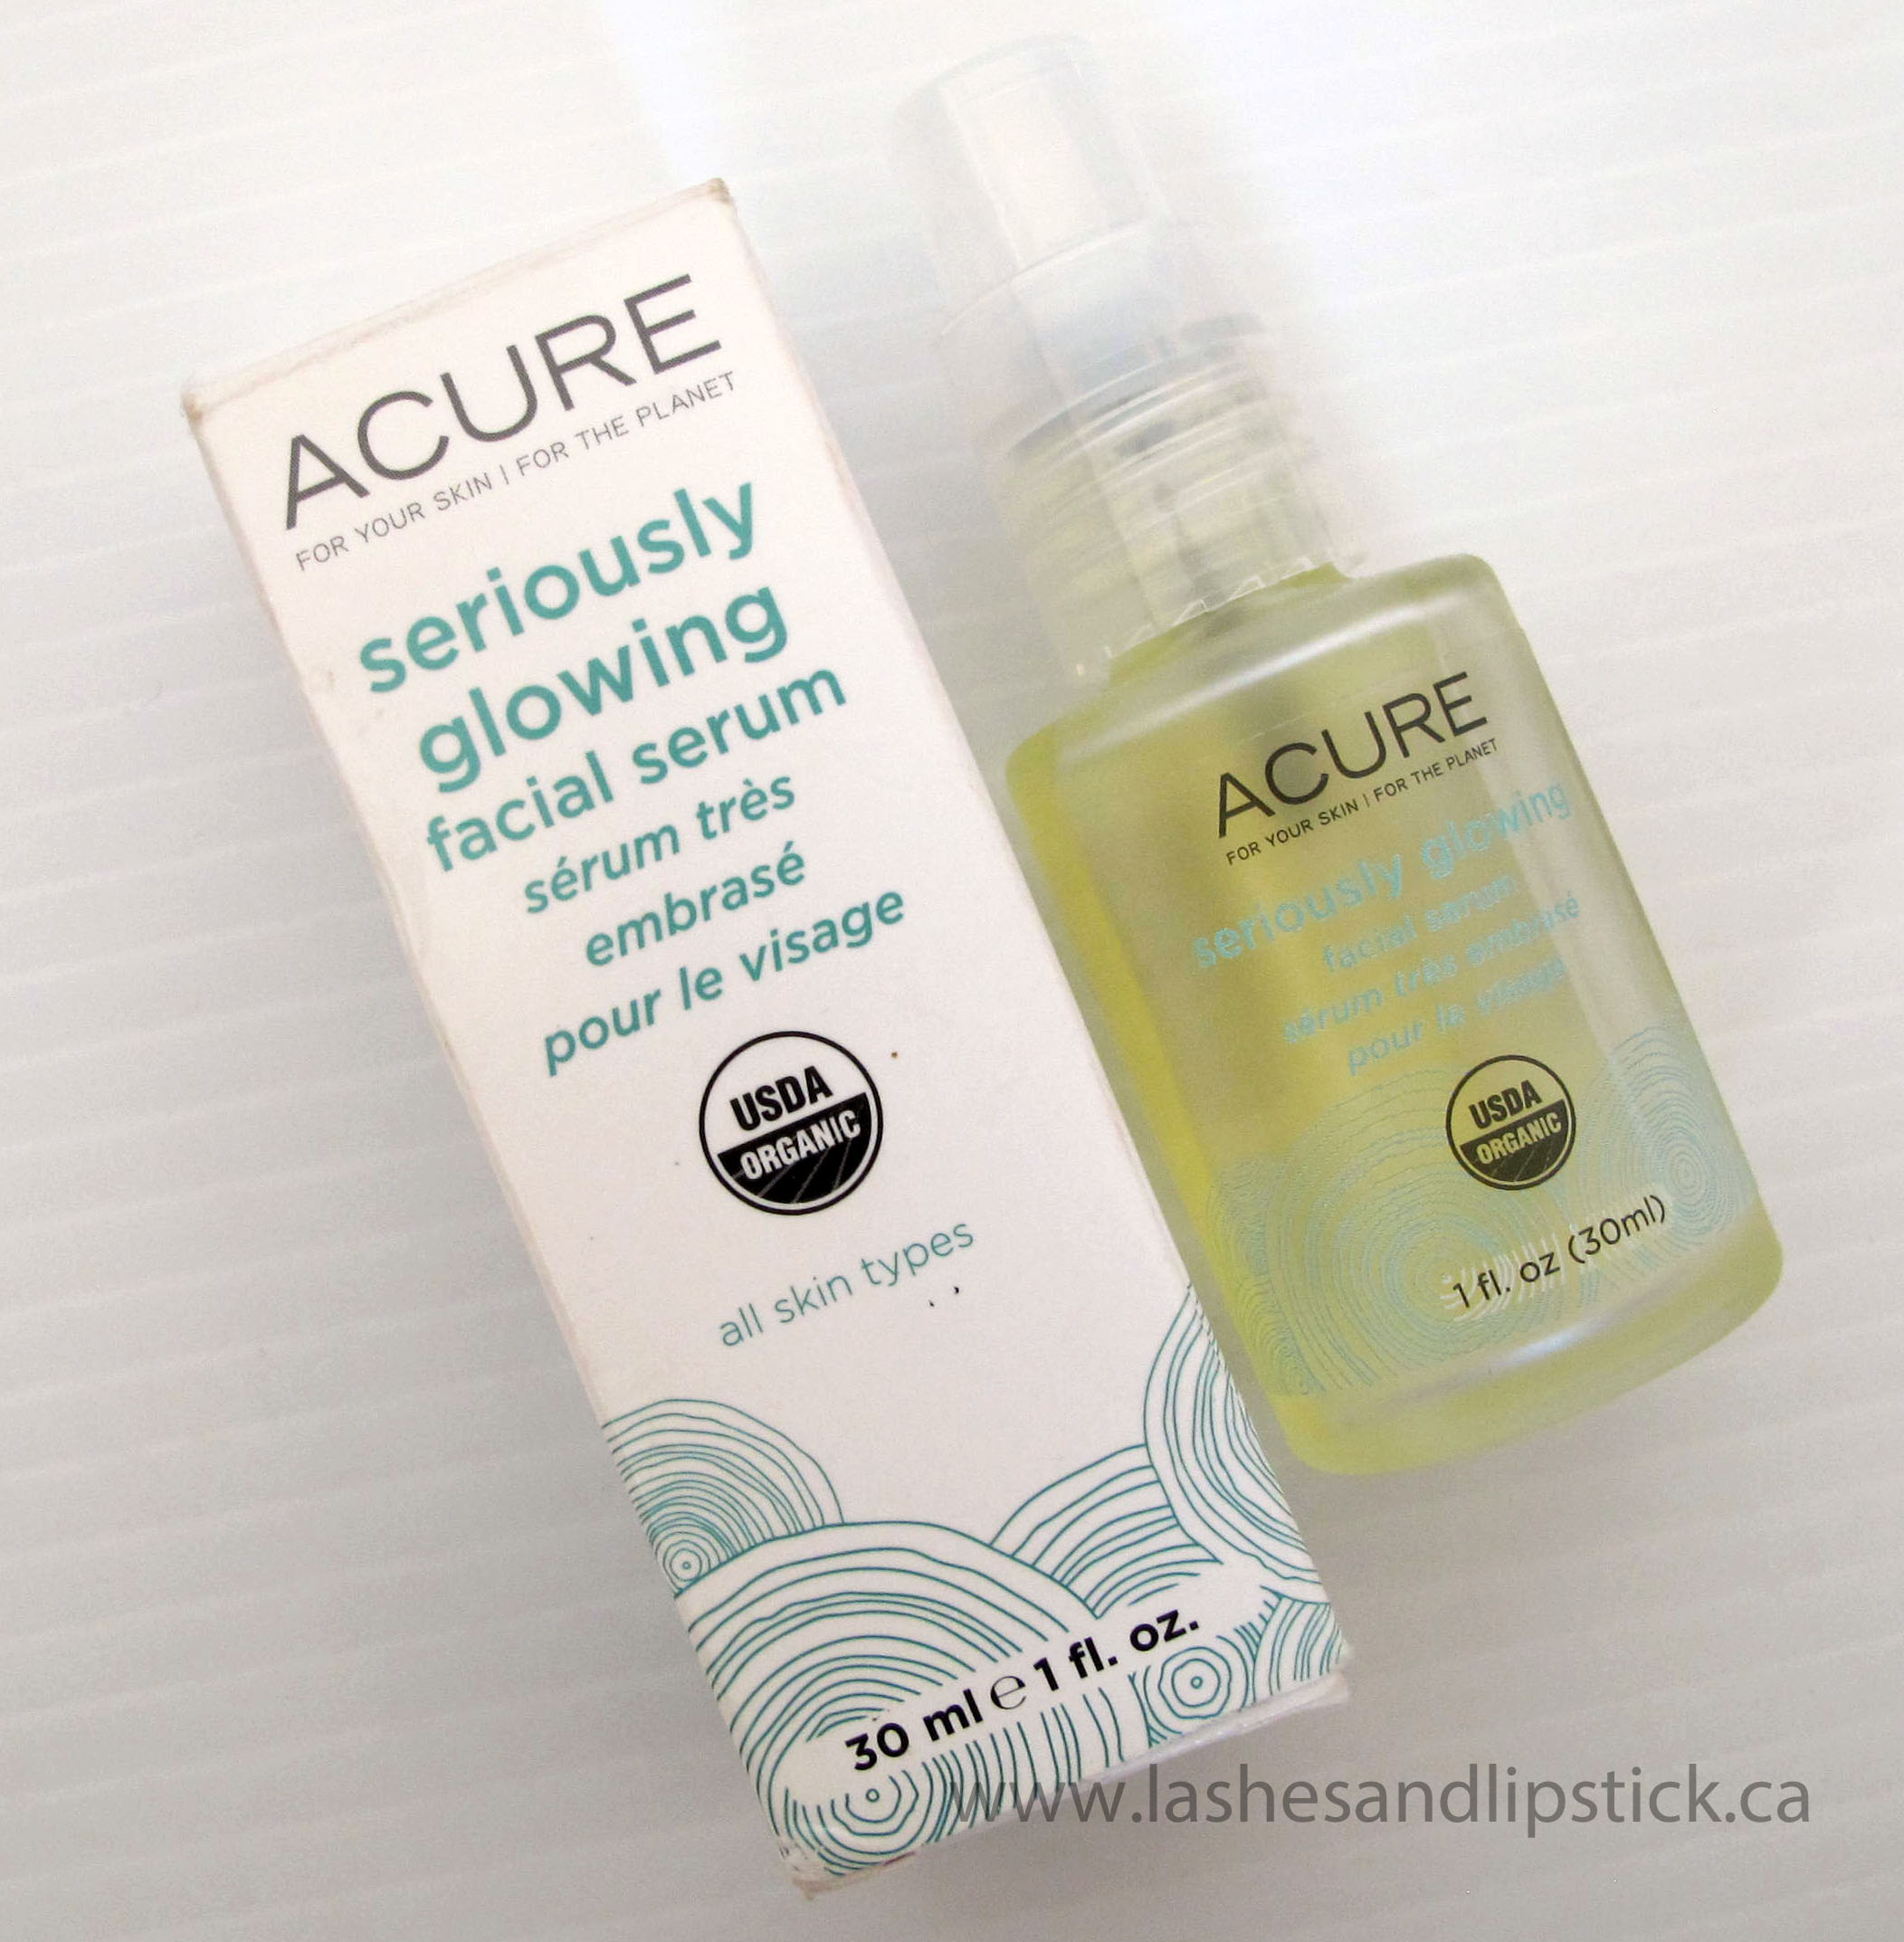 Acure Seriously Glowing Facial Serum Has My Skin Seriously